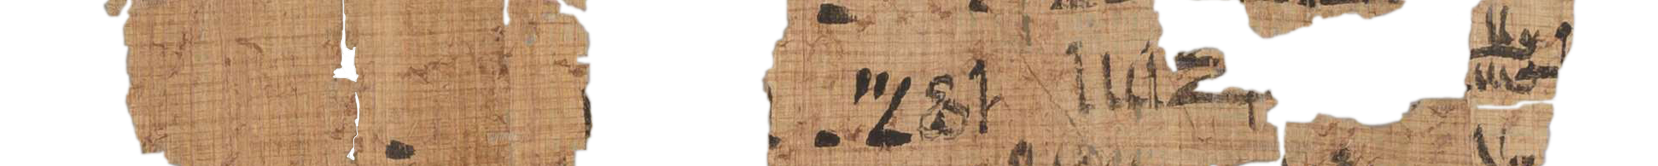 the Turin king list 4.7 (photo of the hieratic text)